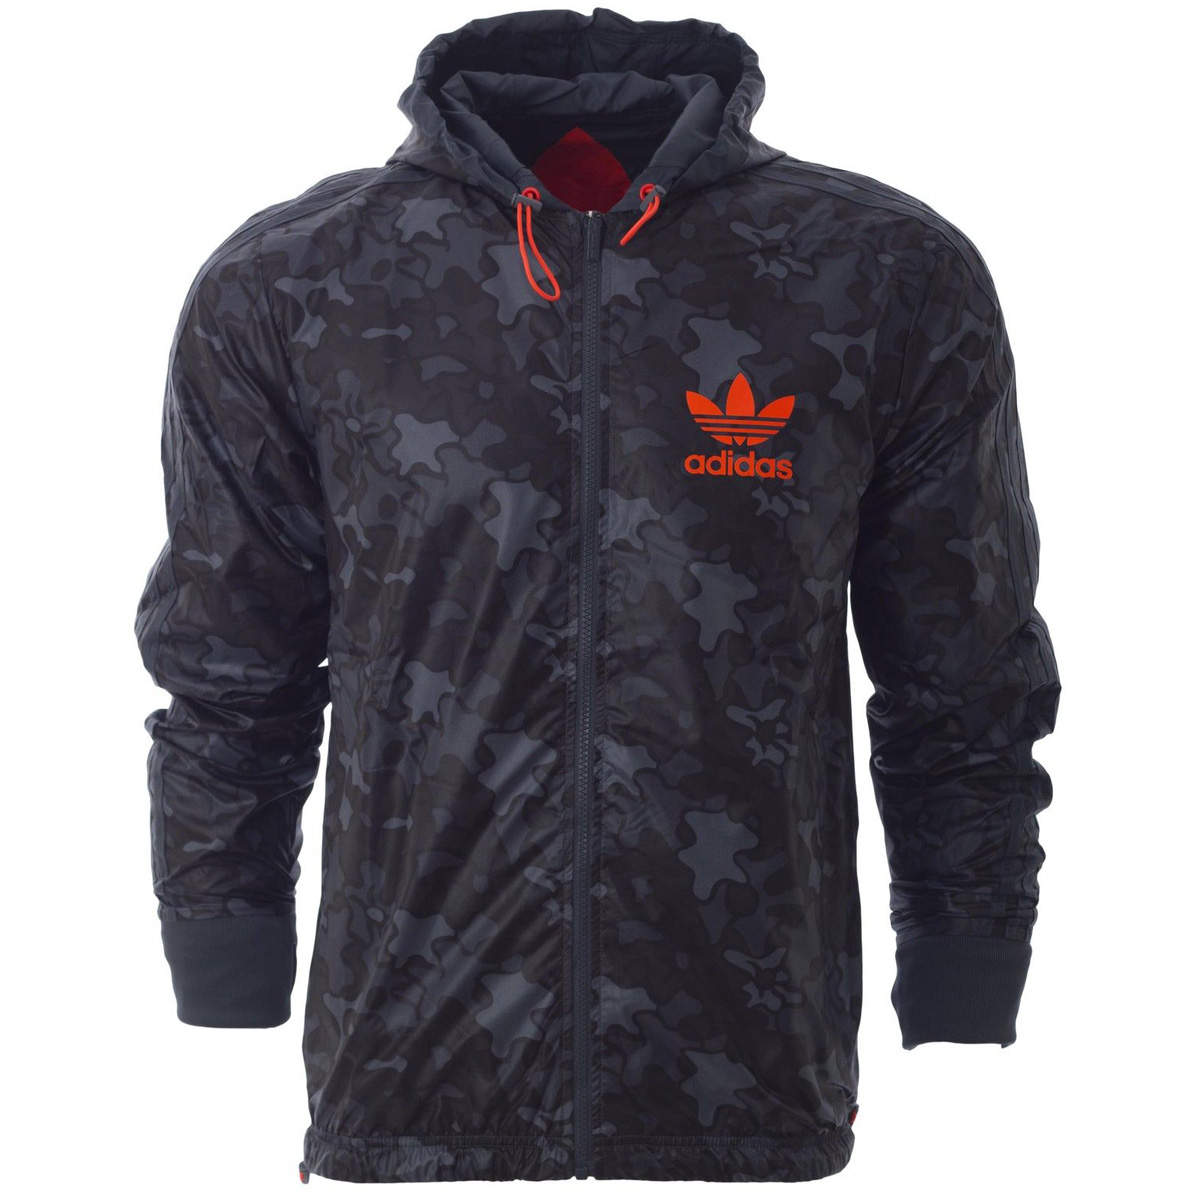 adidas originals reversible jacket